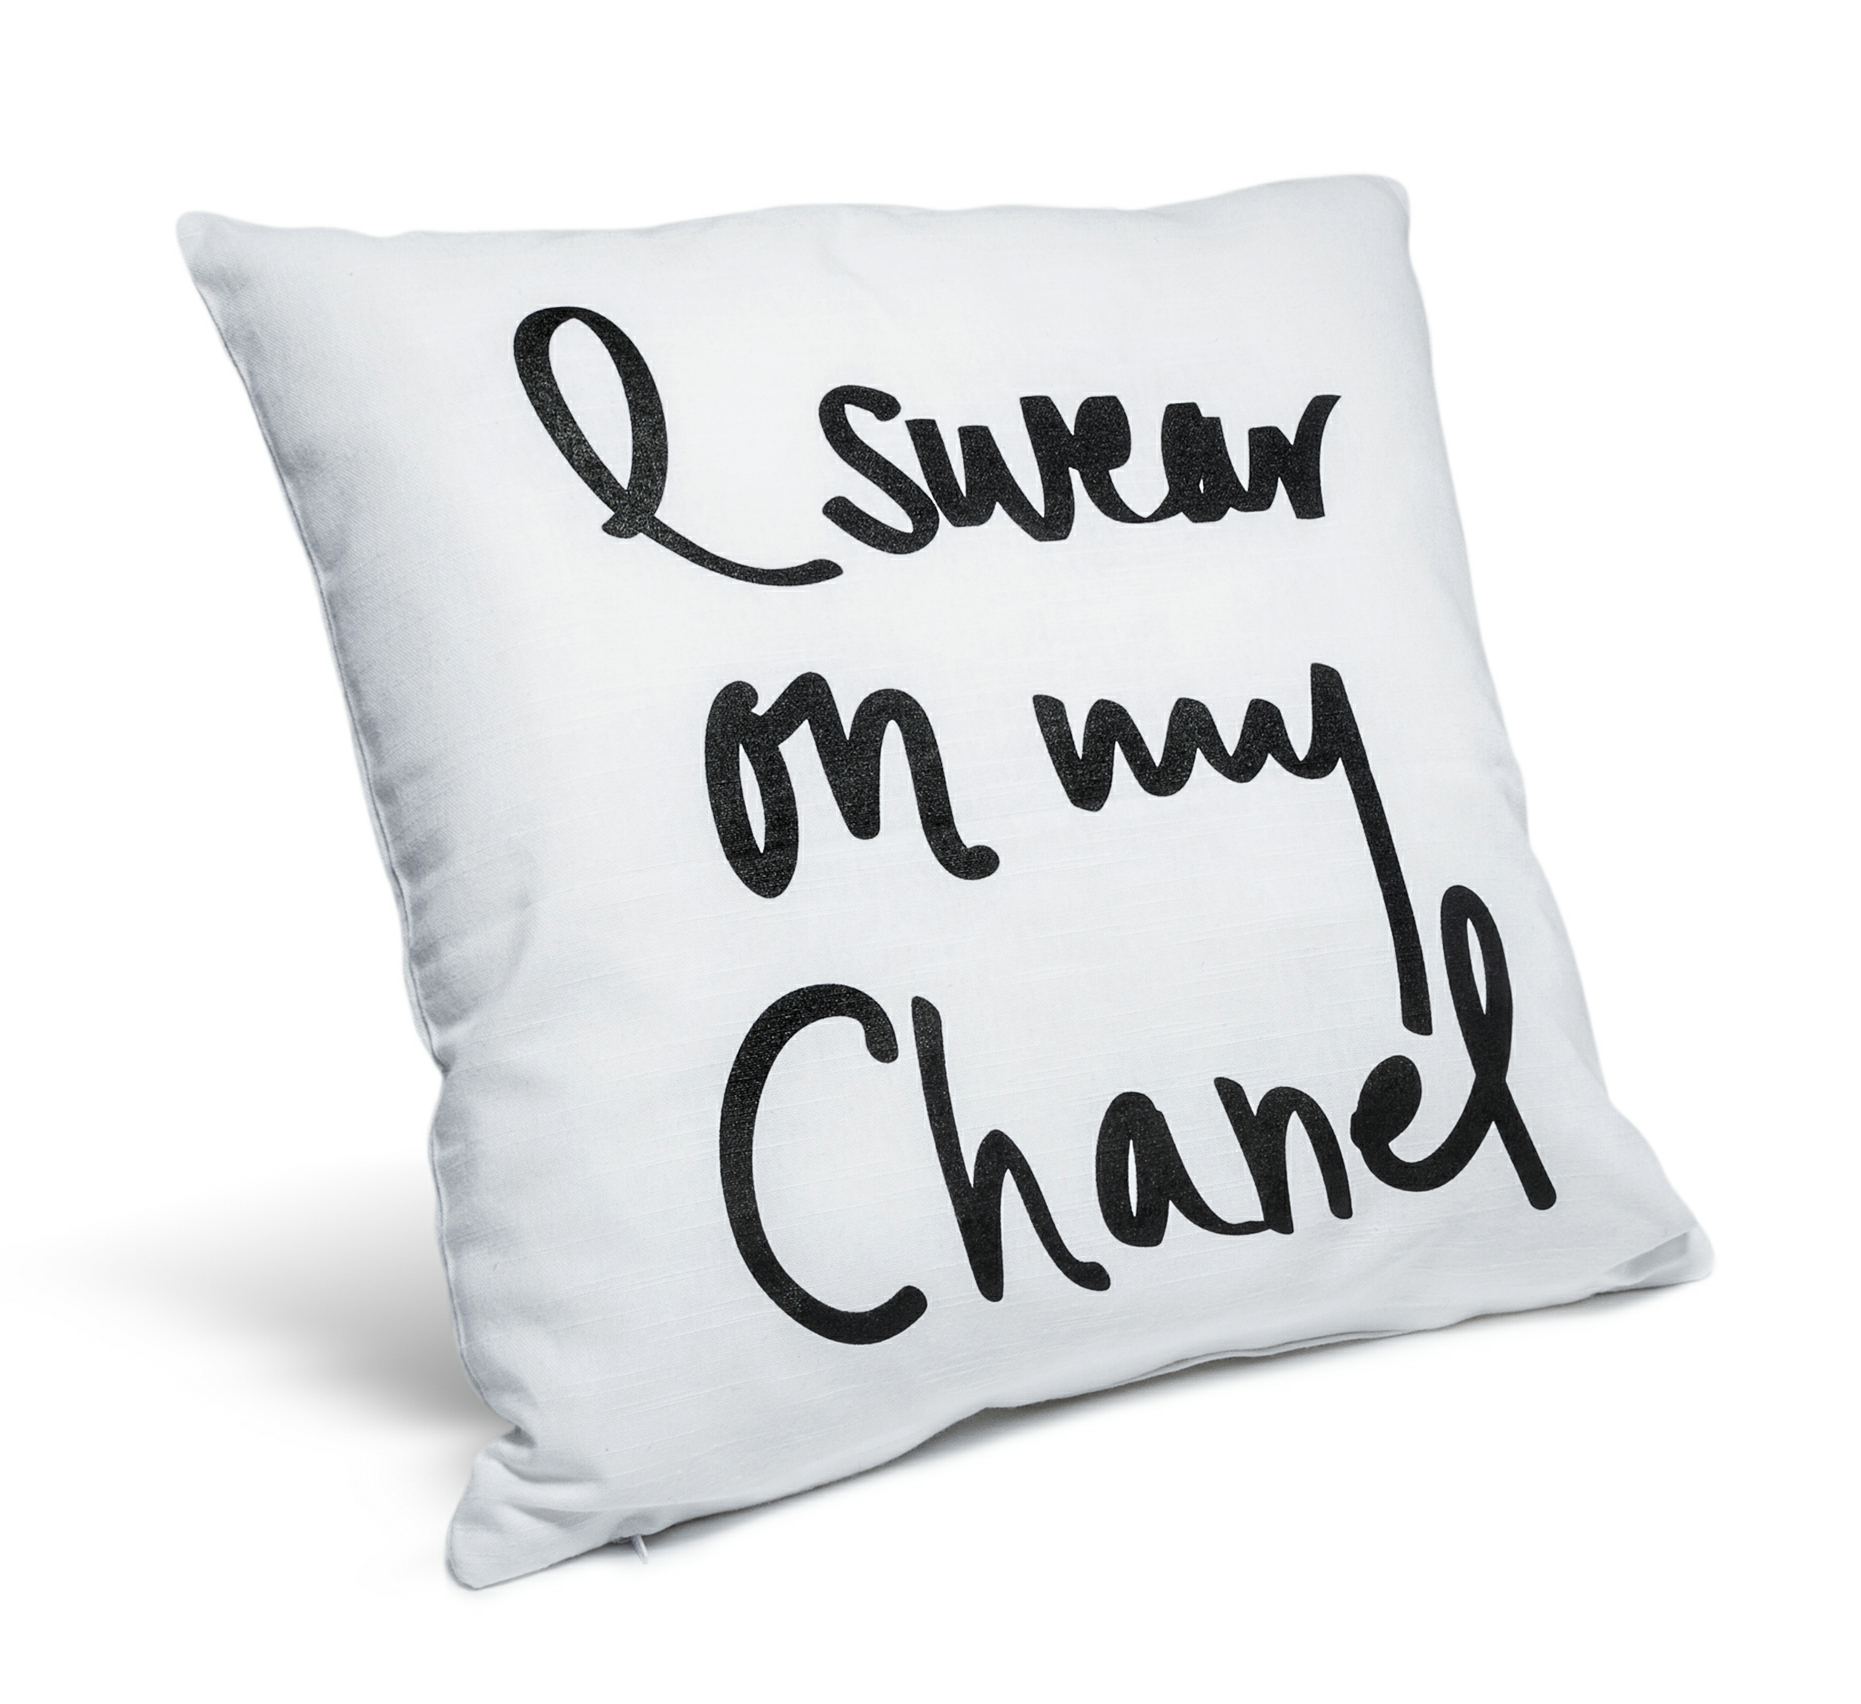 I swear on my chanel pillow